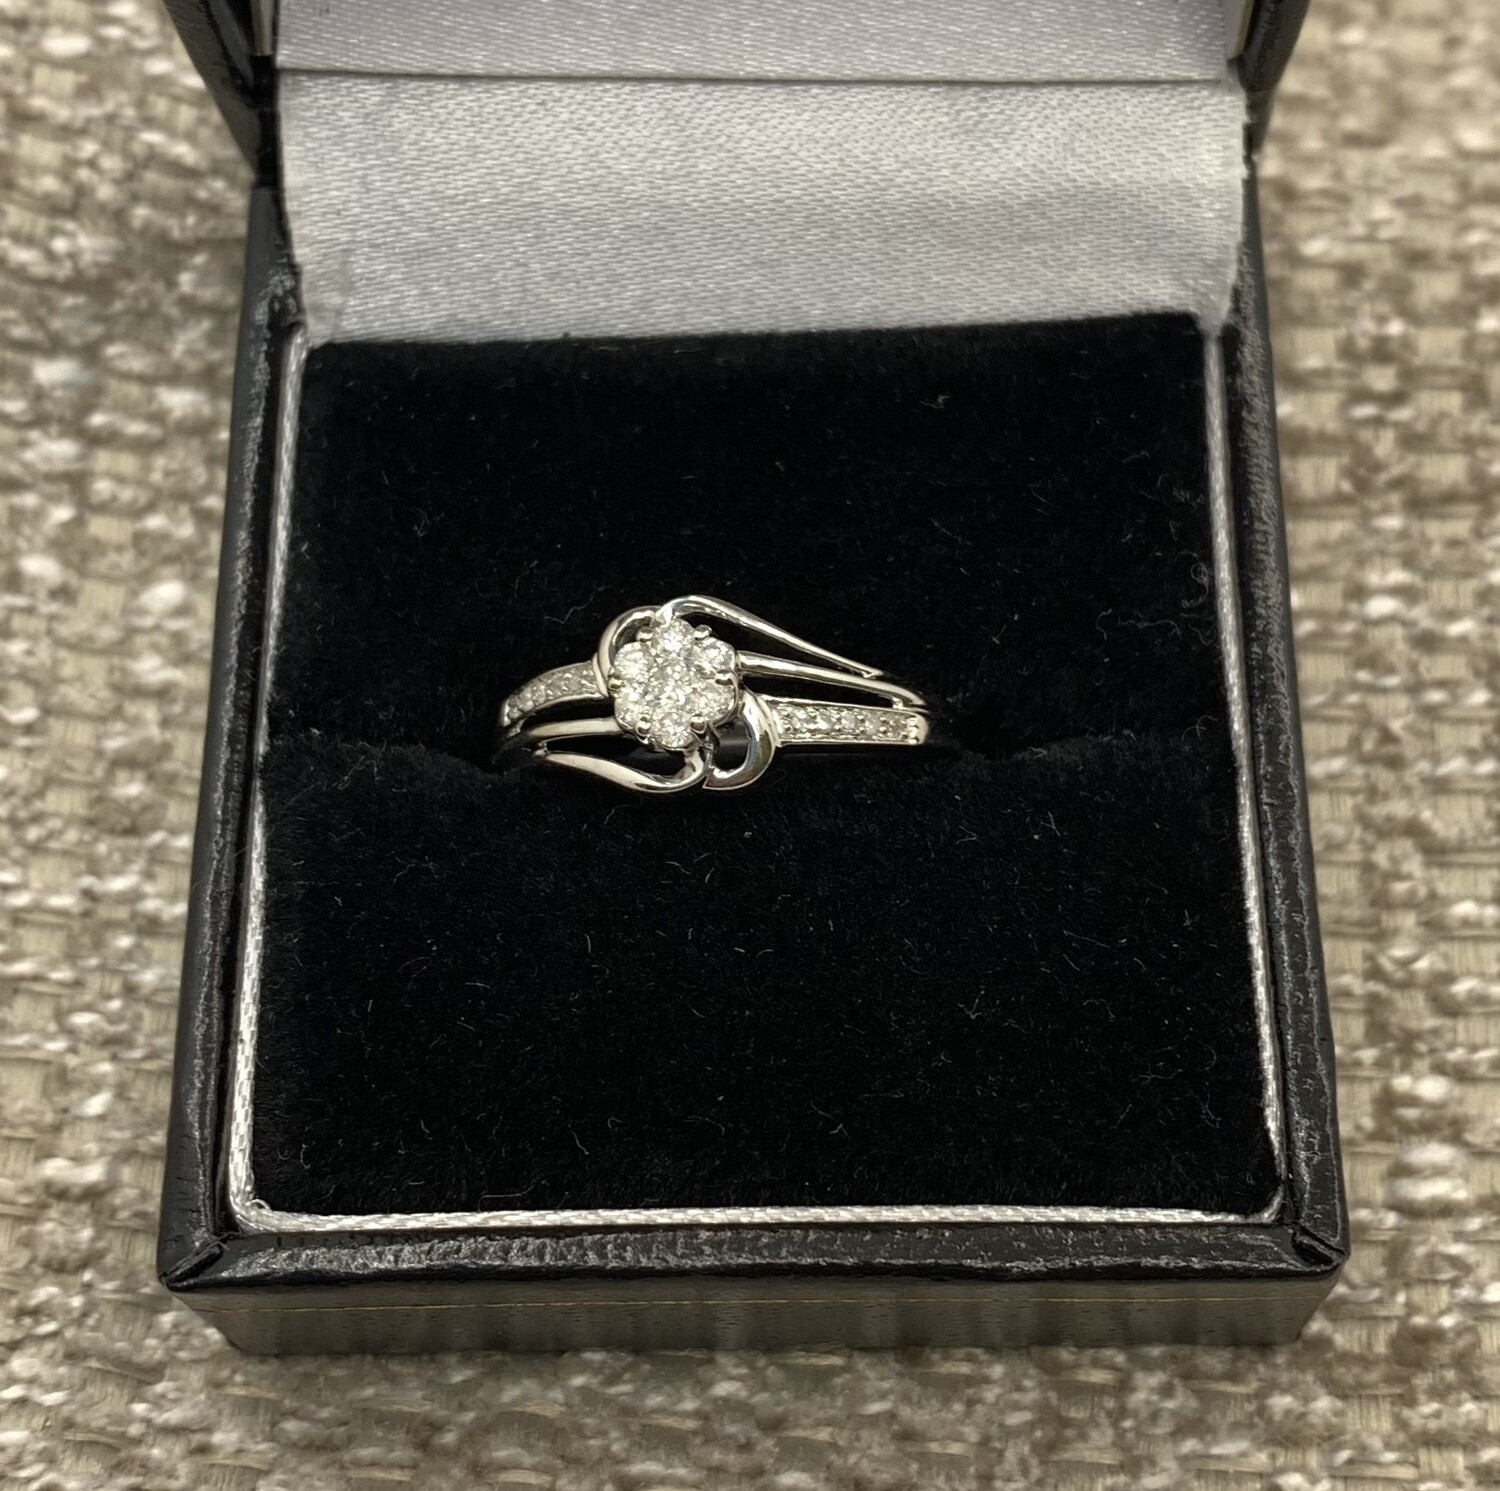 Diamond Cluster Engagement Ring 21 pts  Total Weight set in 10k white gold